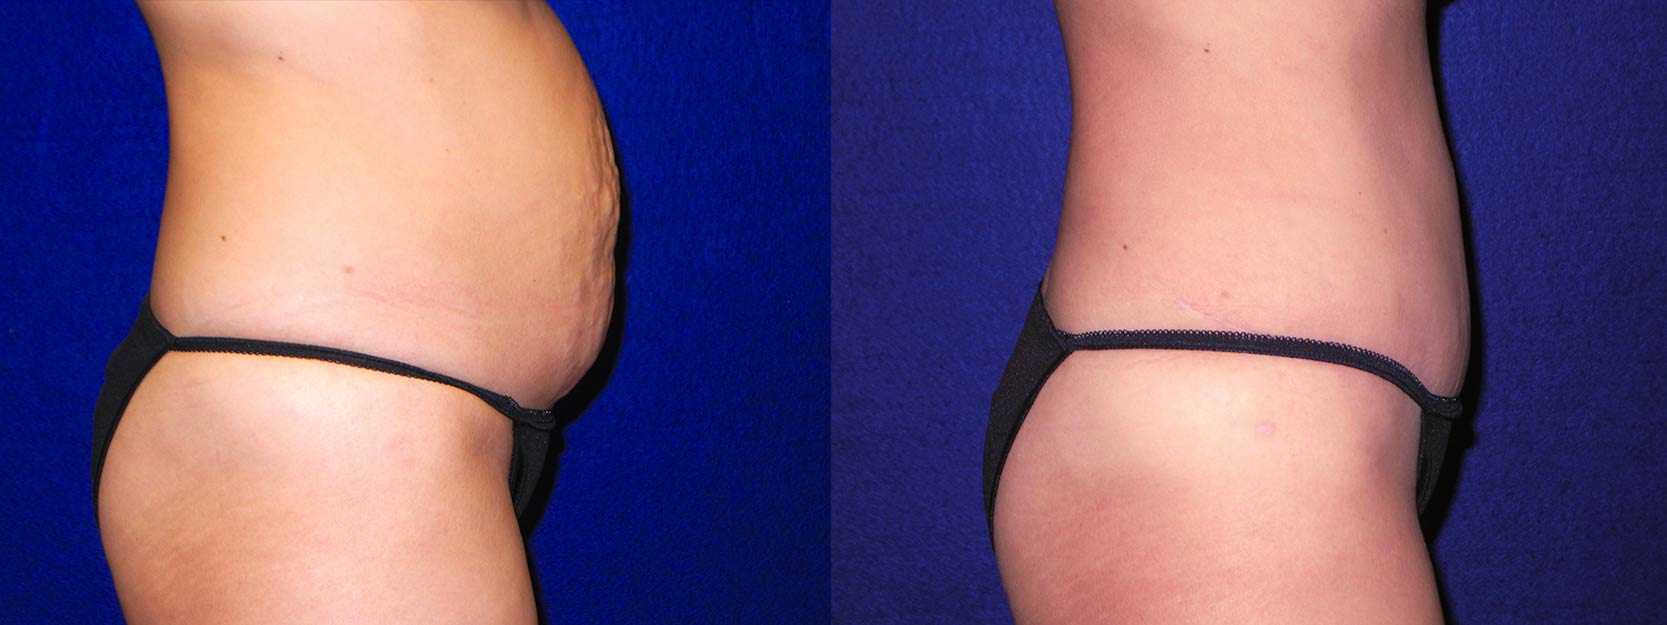 Right Profile View - Tummy Tuck and Liposuction